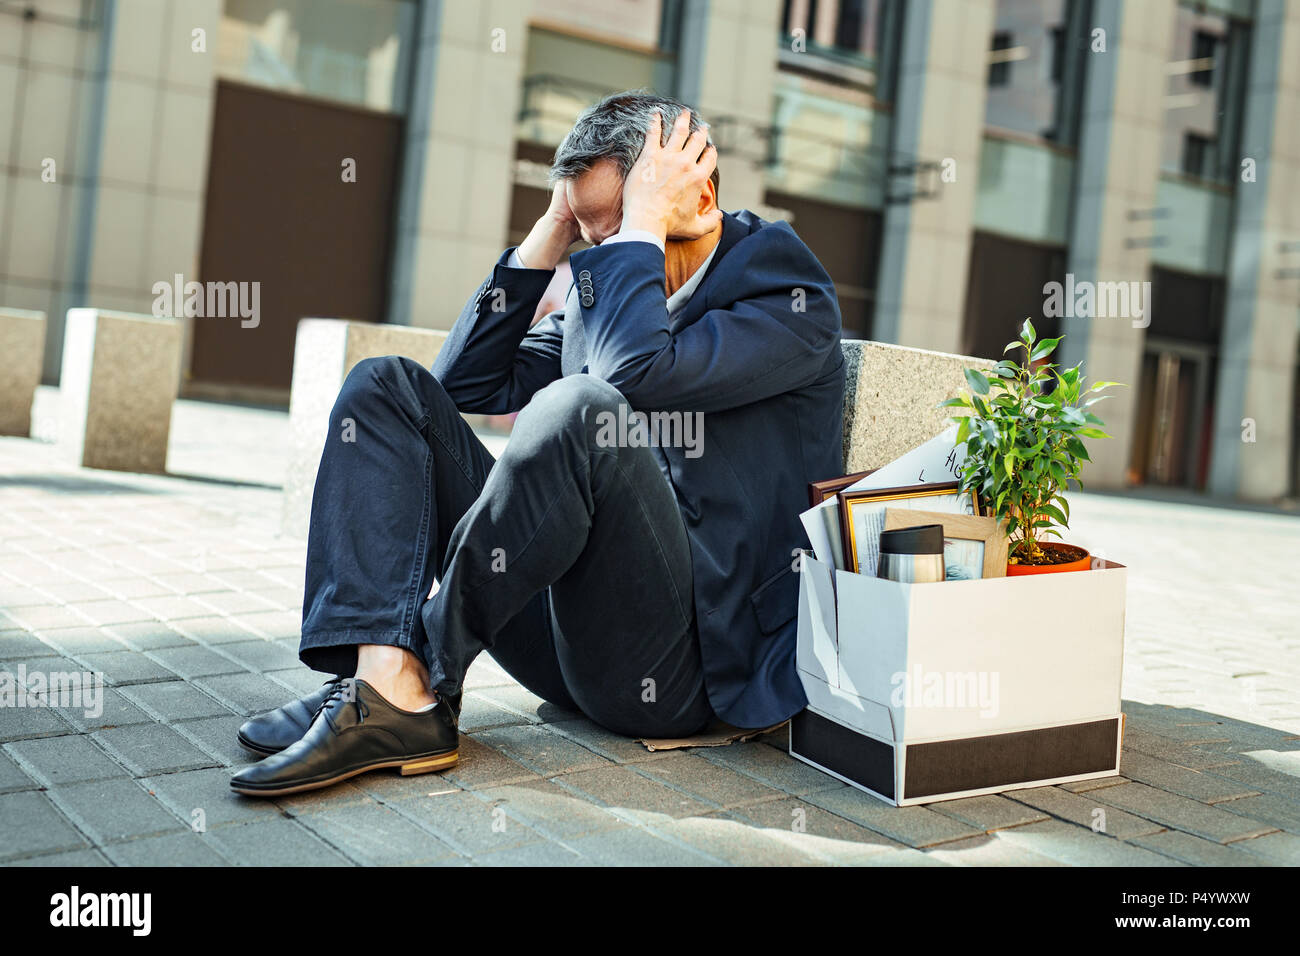 Elderly grey-haired man clutching his head while feeling panic - Stock Image